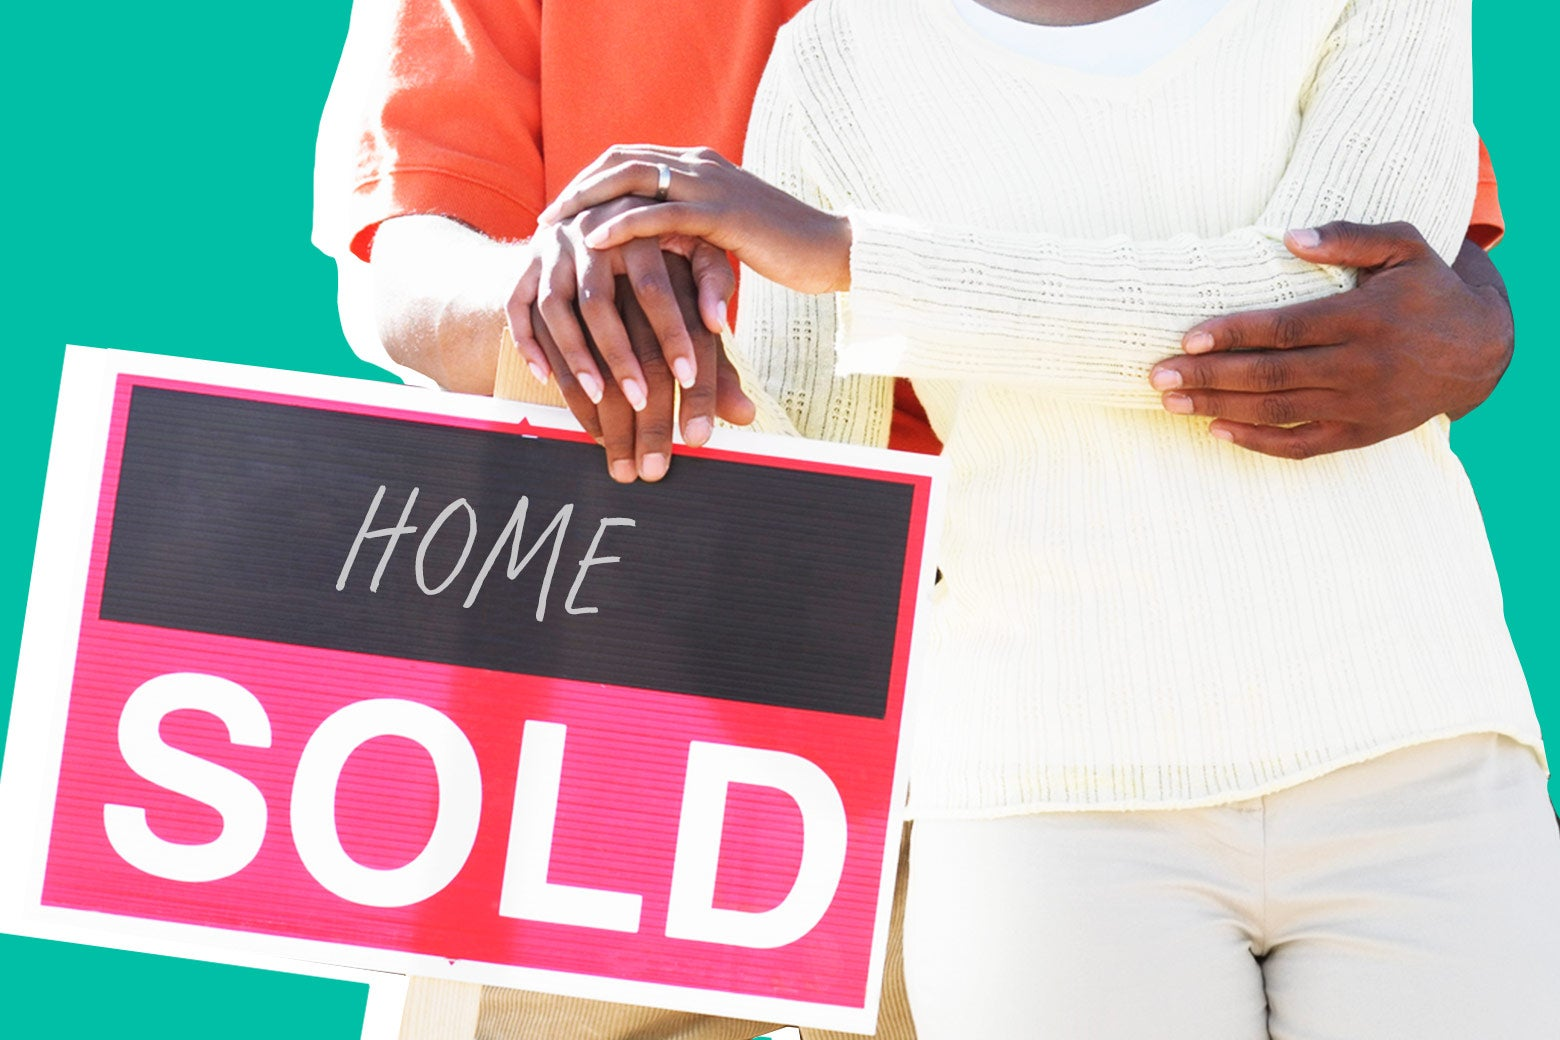 A black family with a home-sold sign.